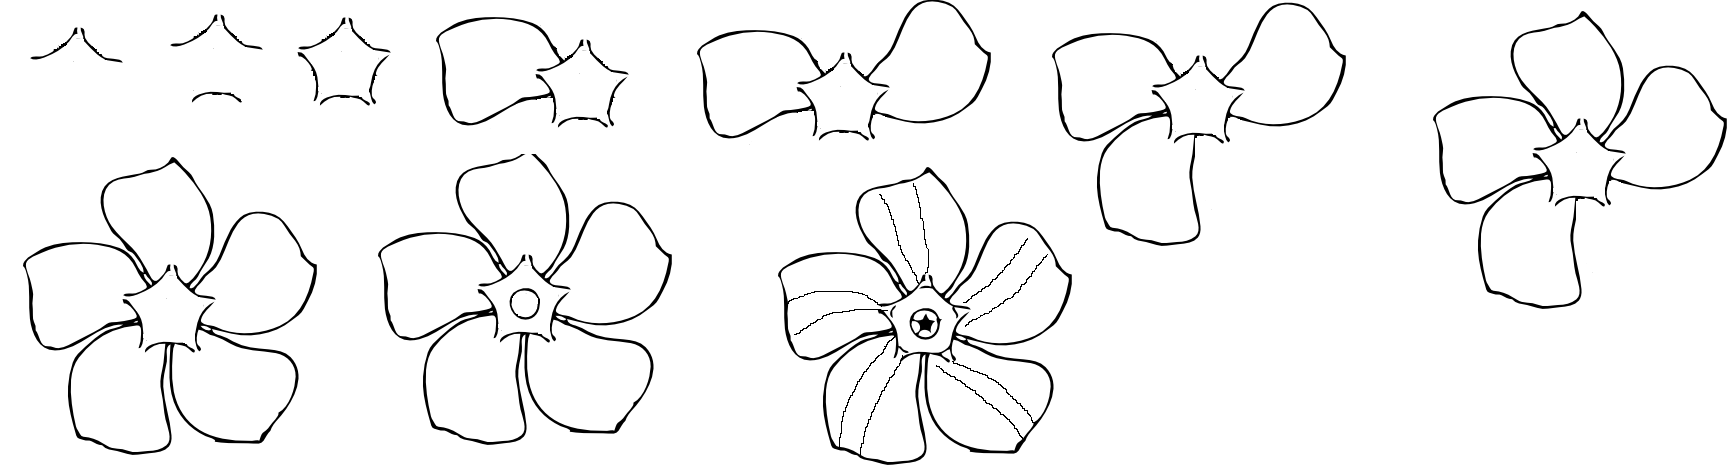 How To Draw A Periwinkle Flower. Easy Free Step by Step